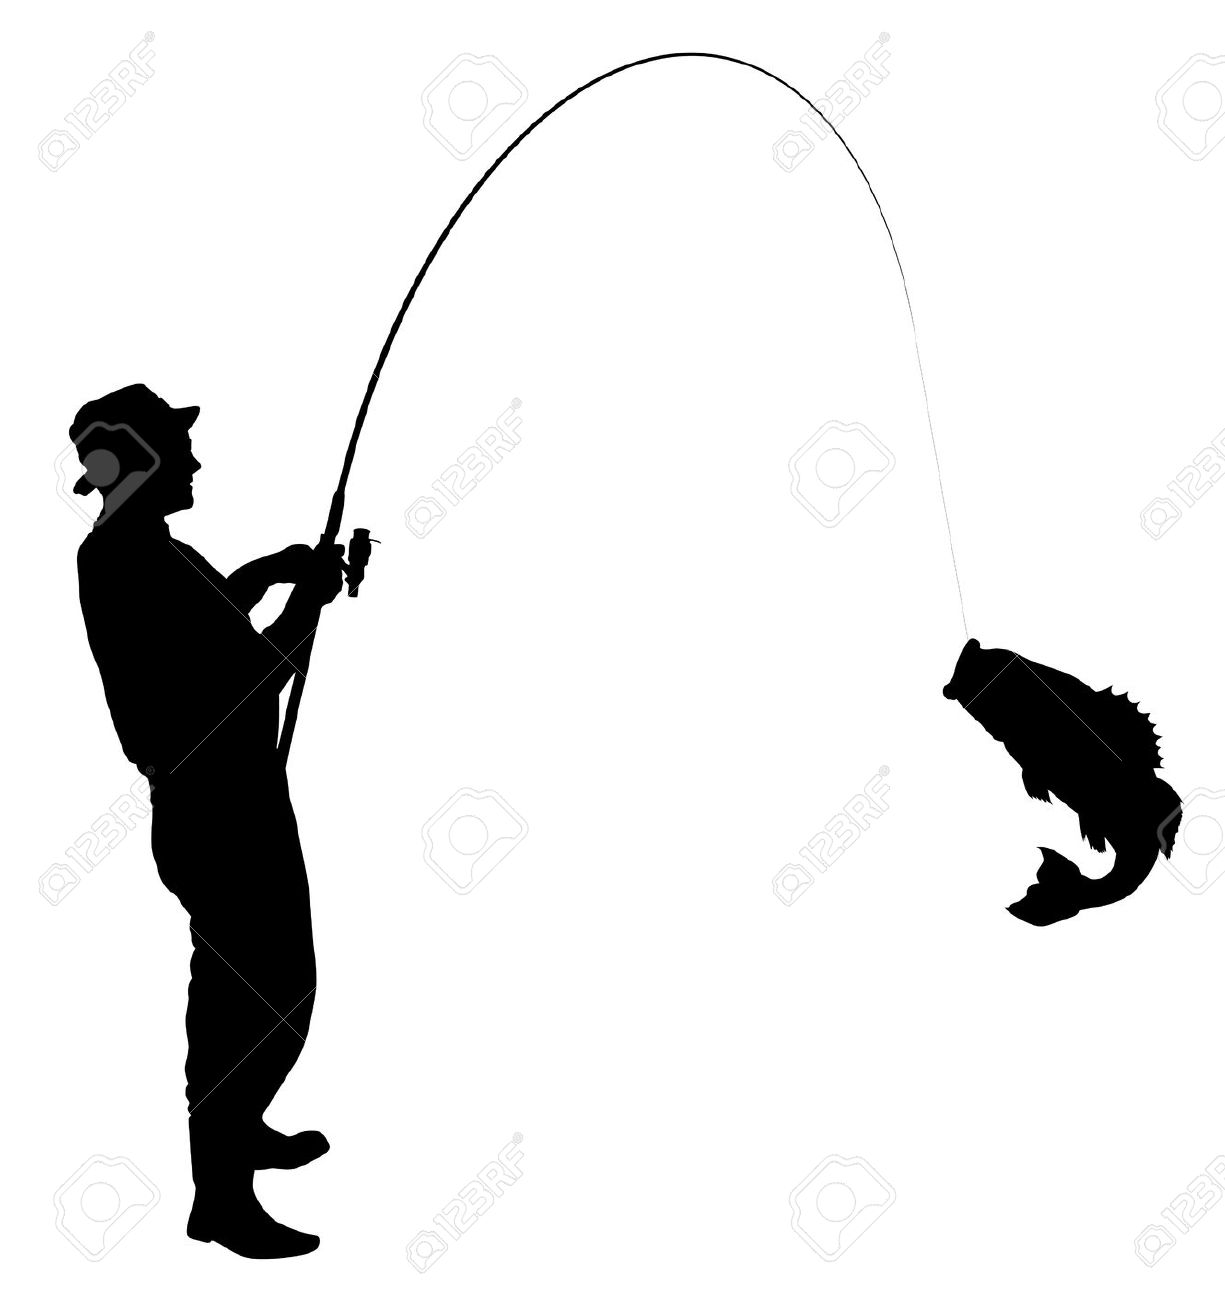 1225x1300 Fishing Pole Silhouette Clipart